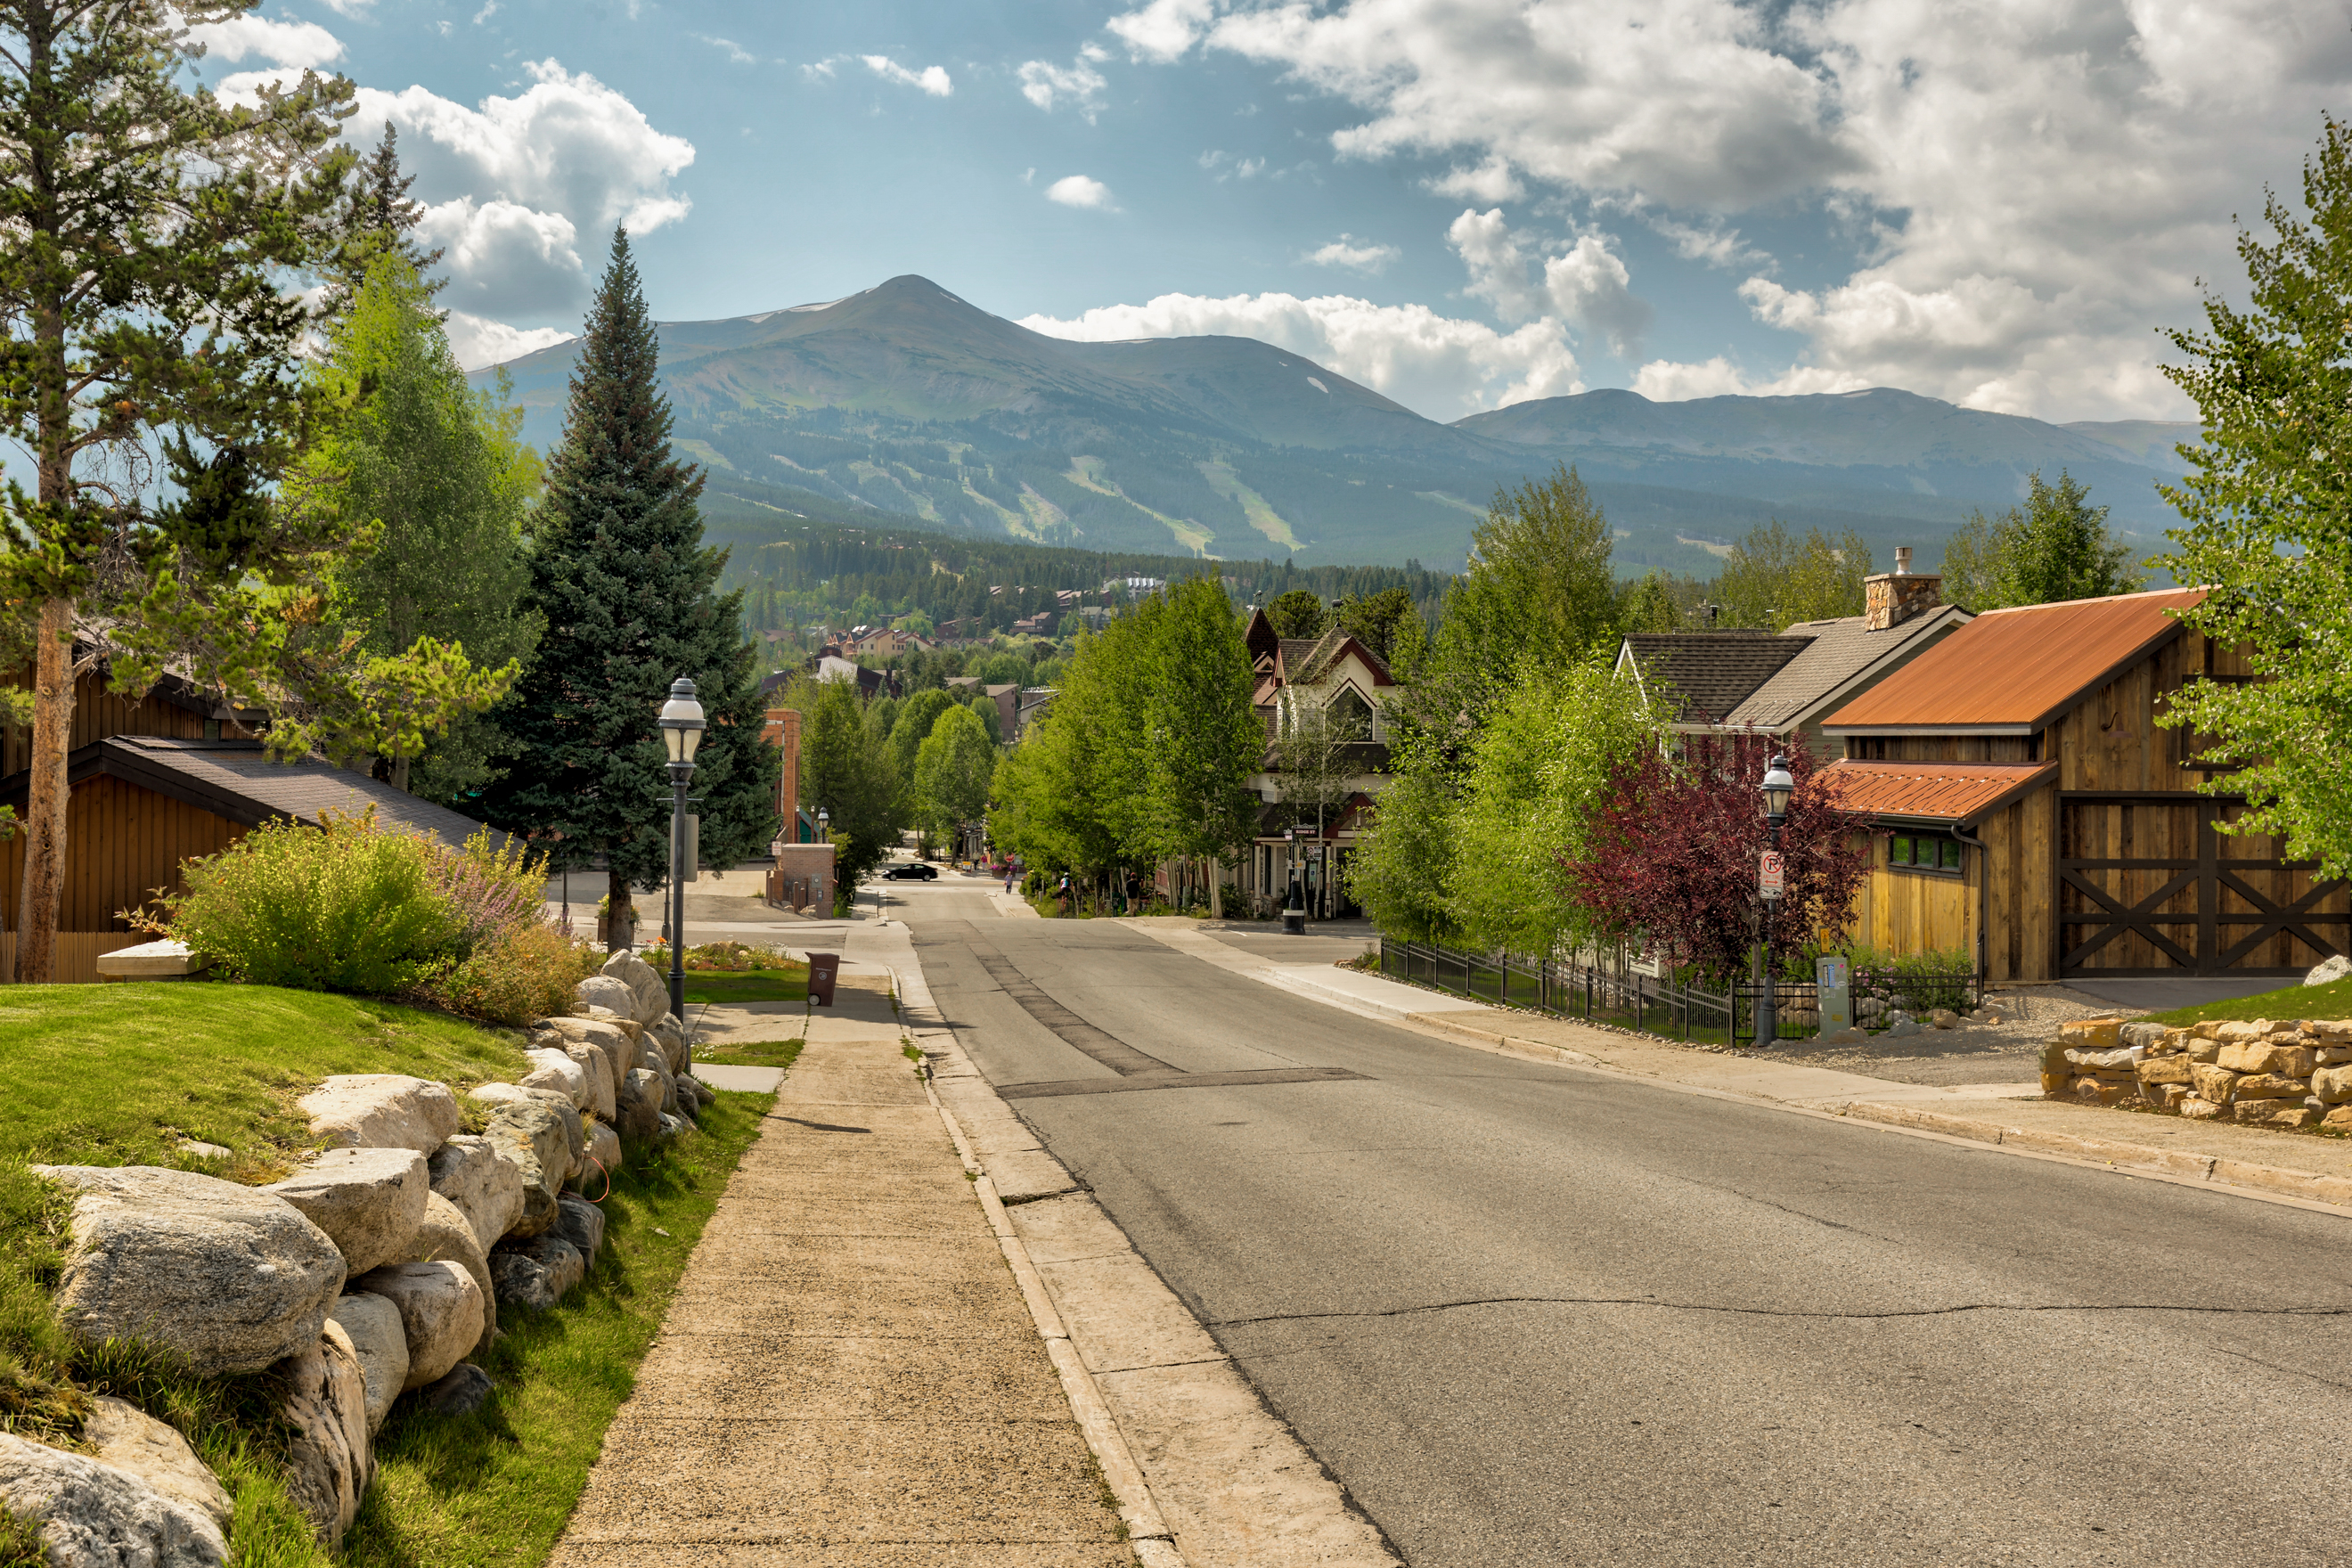 French Street in Breckenridge